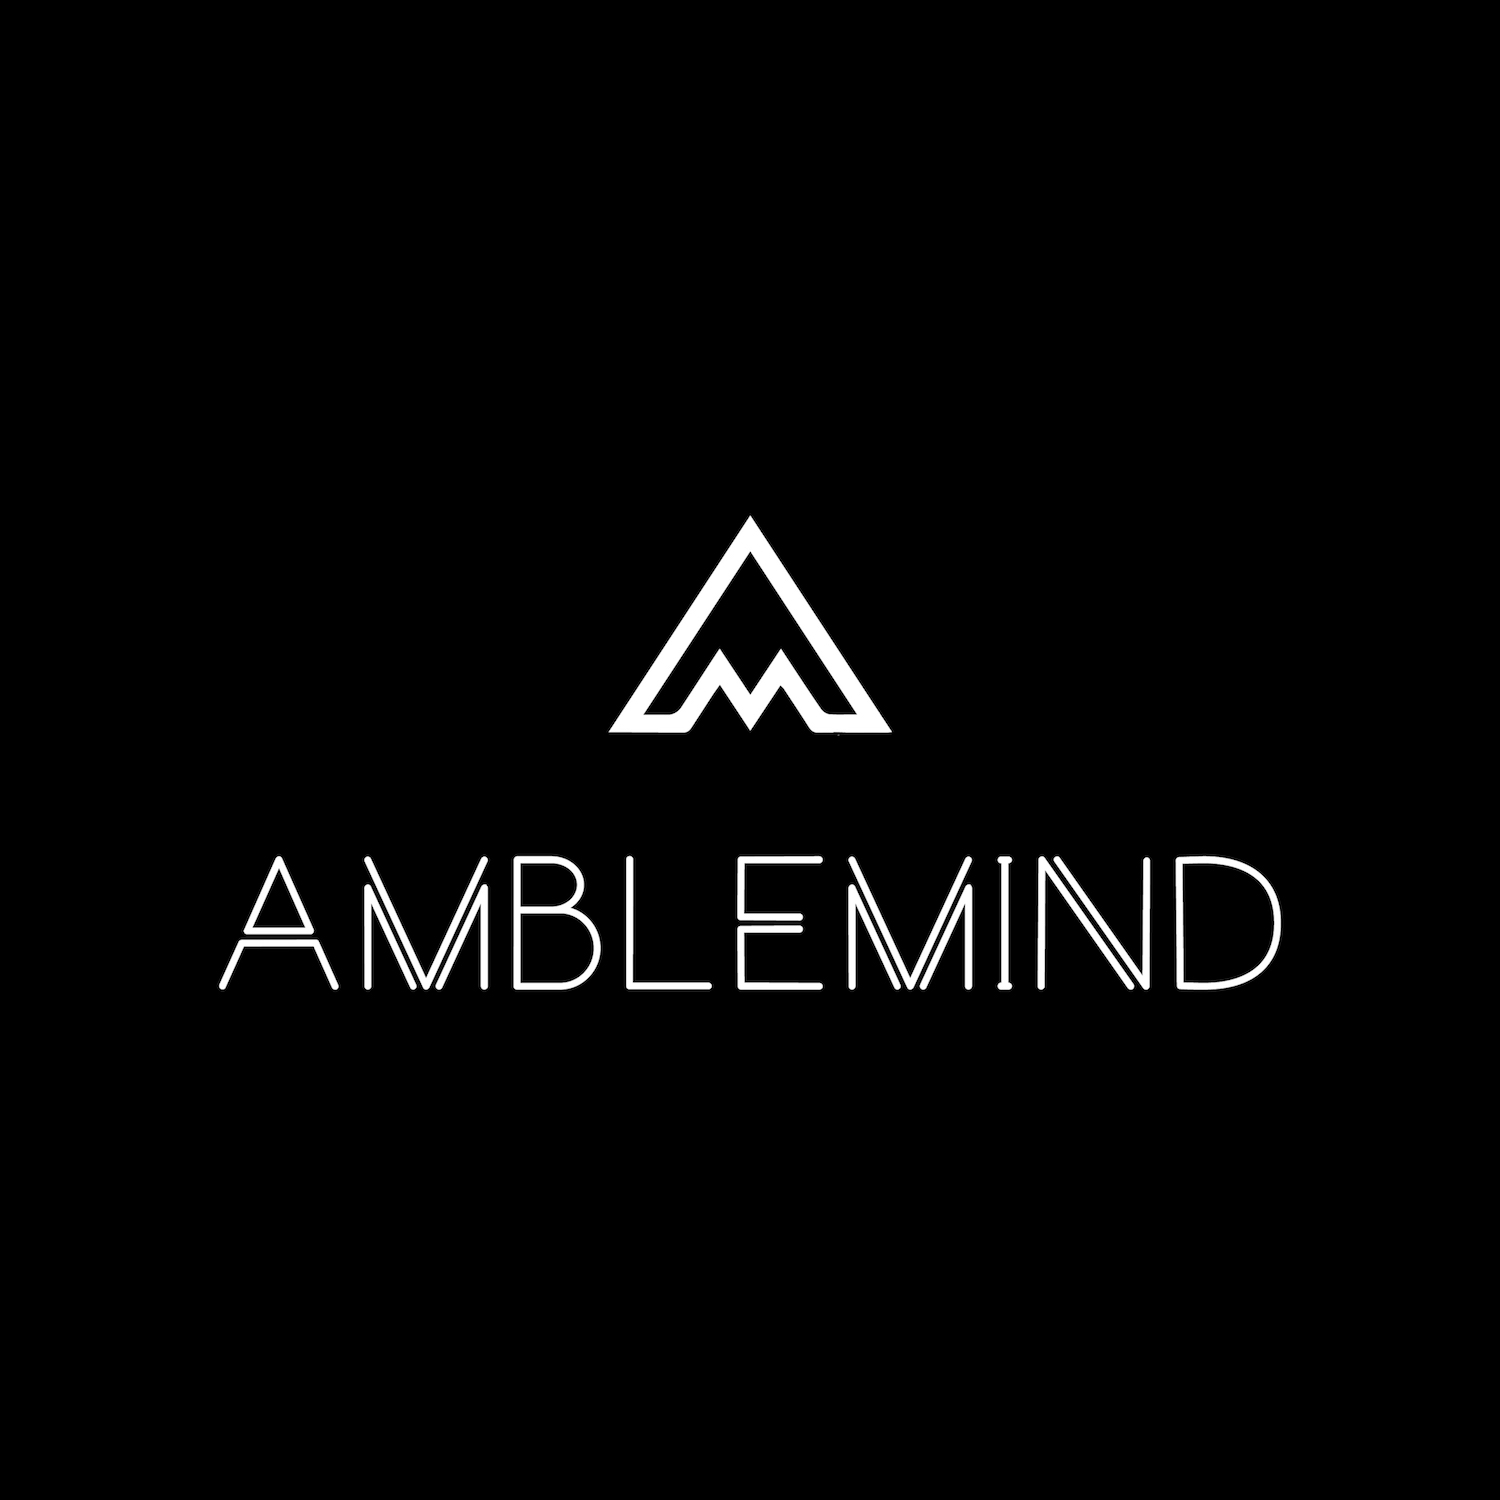 The Purpose - AmbleMind was founded by Darren Alderman to foster creativity both in his own life and the lives of those around him.